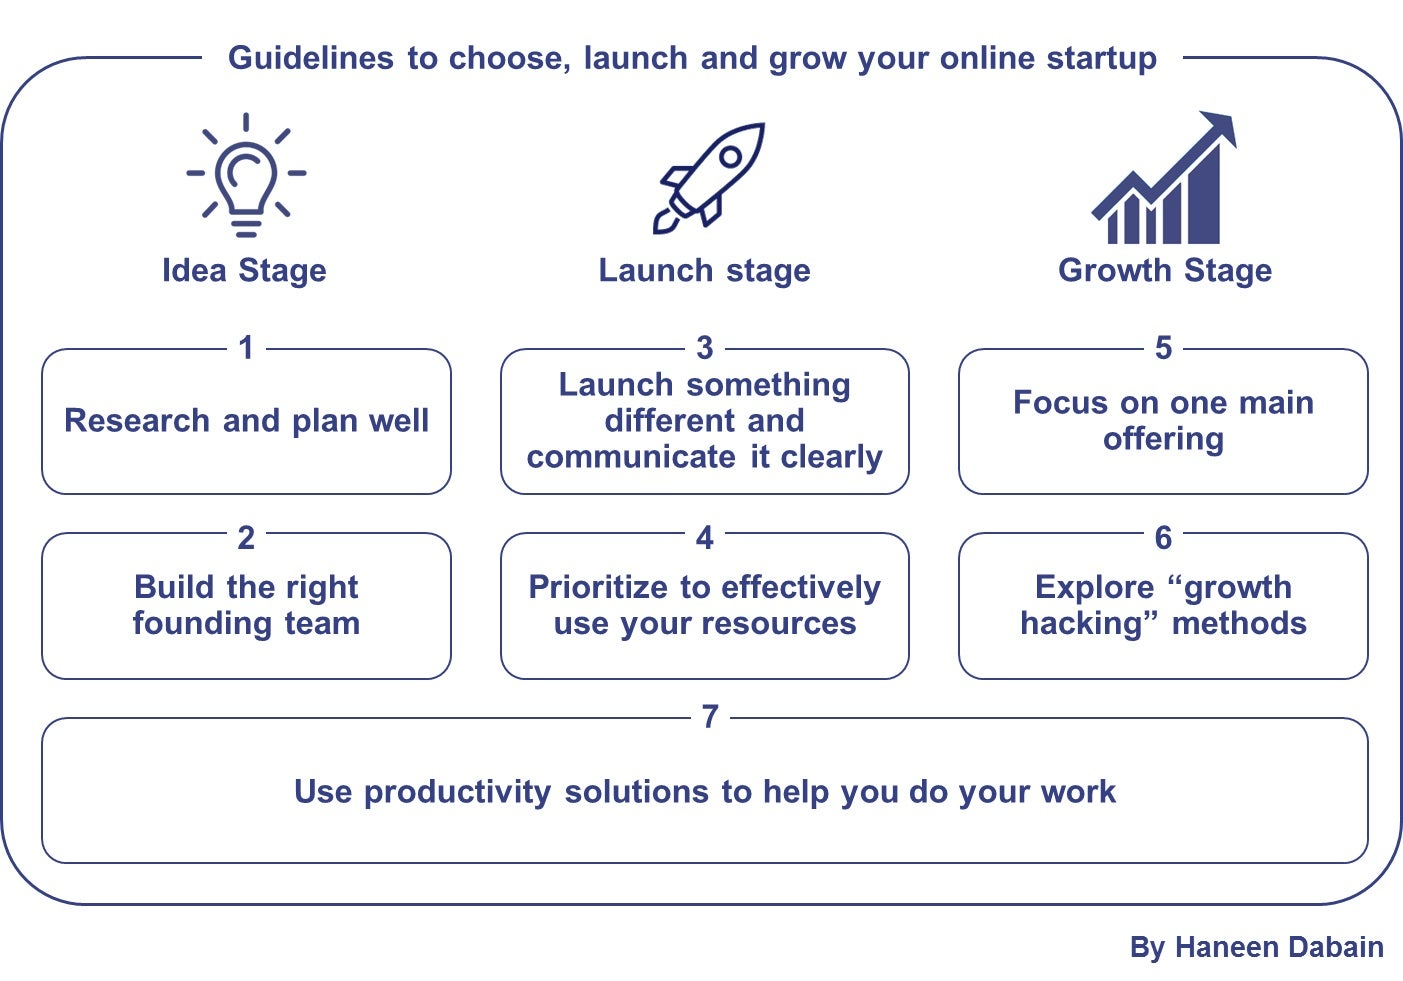 Build A Better Business: Seven Guidelines For Choosing, Launching And Growing Your Online Startup